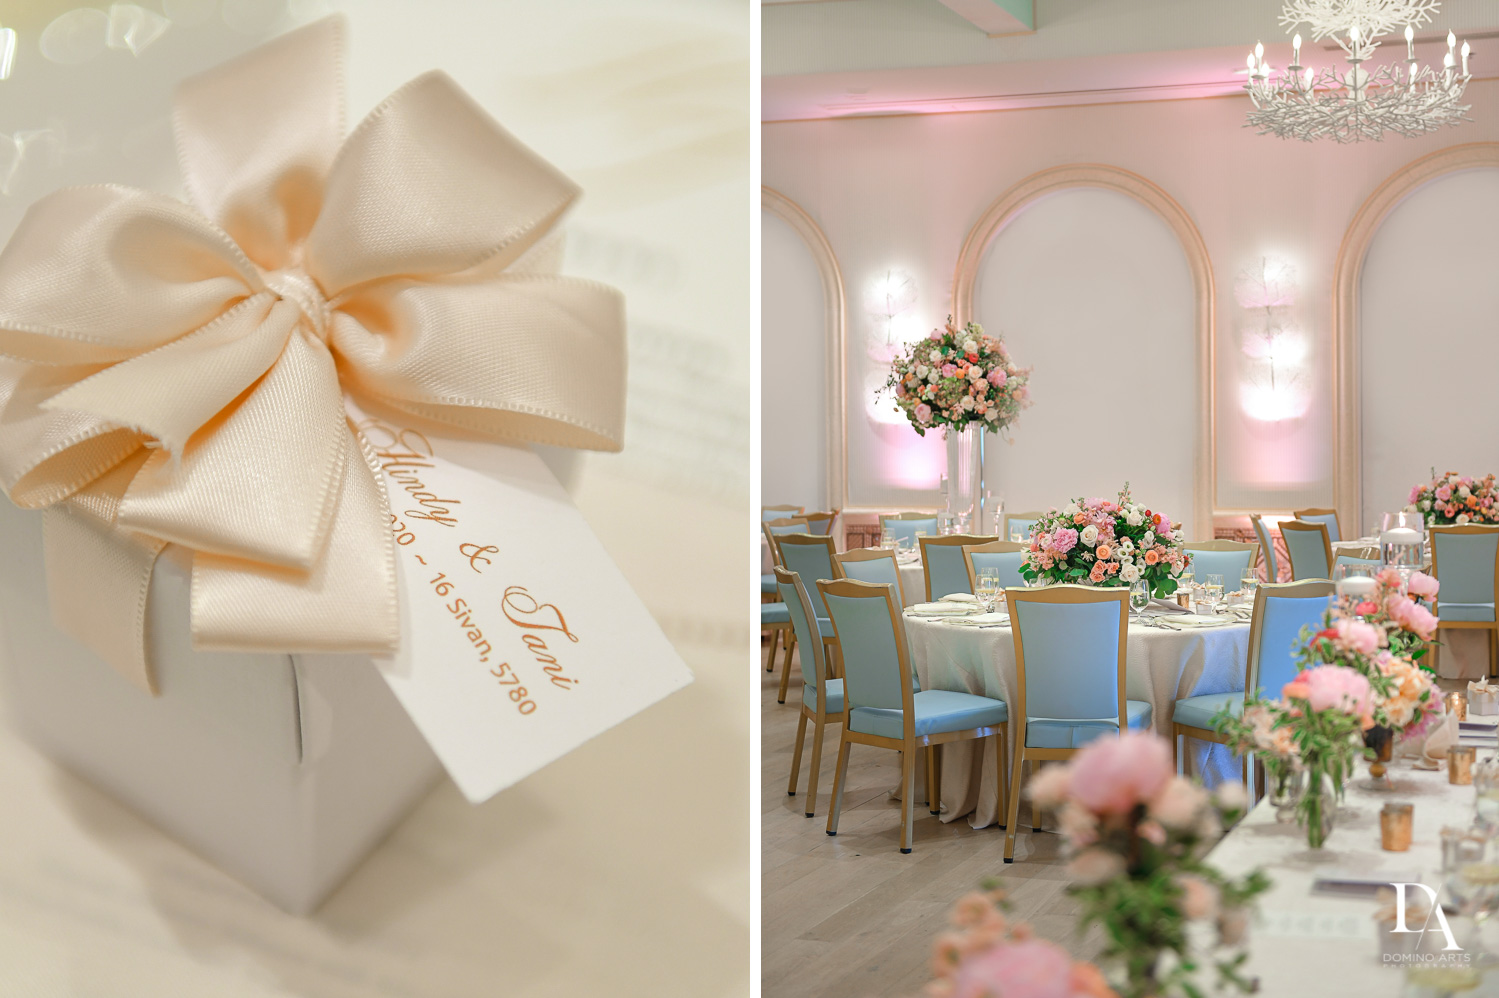 gifts and decor at Jewish Orthodox Wedding in Palm Beach by Domino Arts Photography